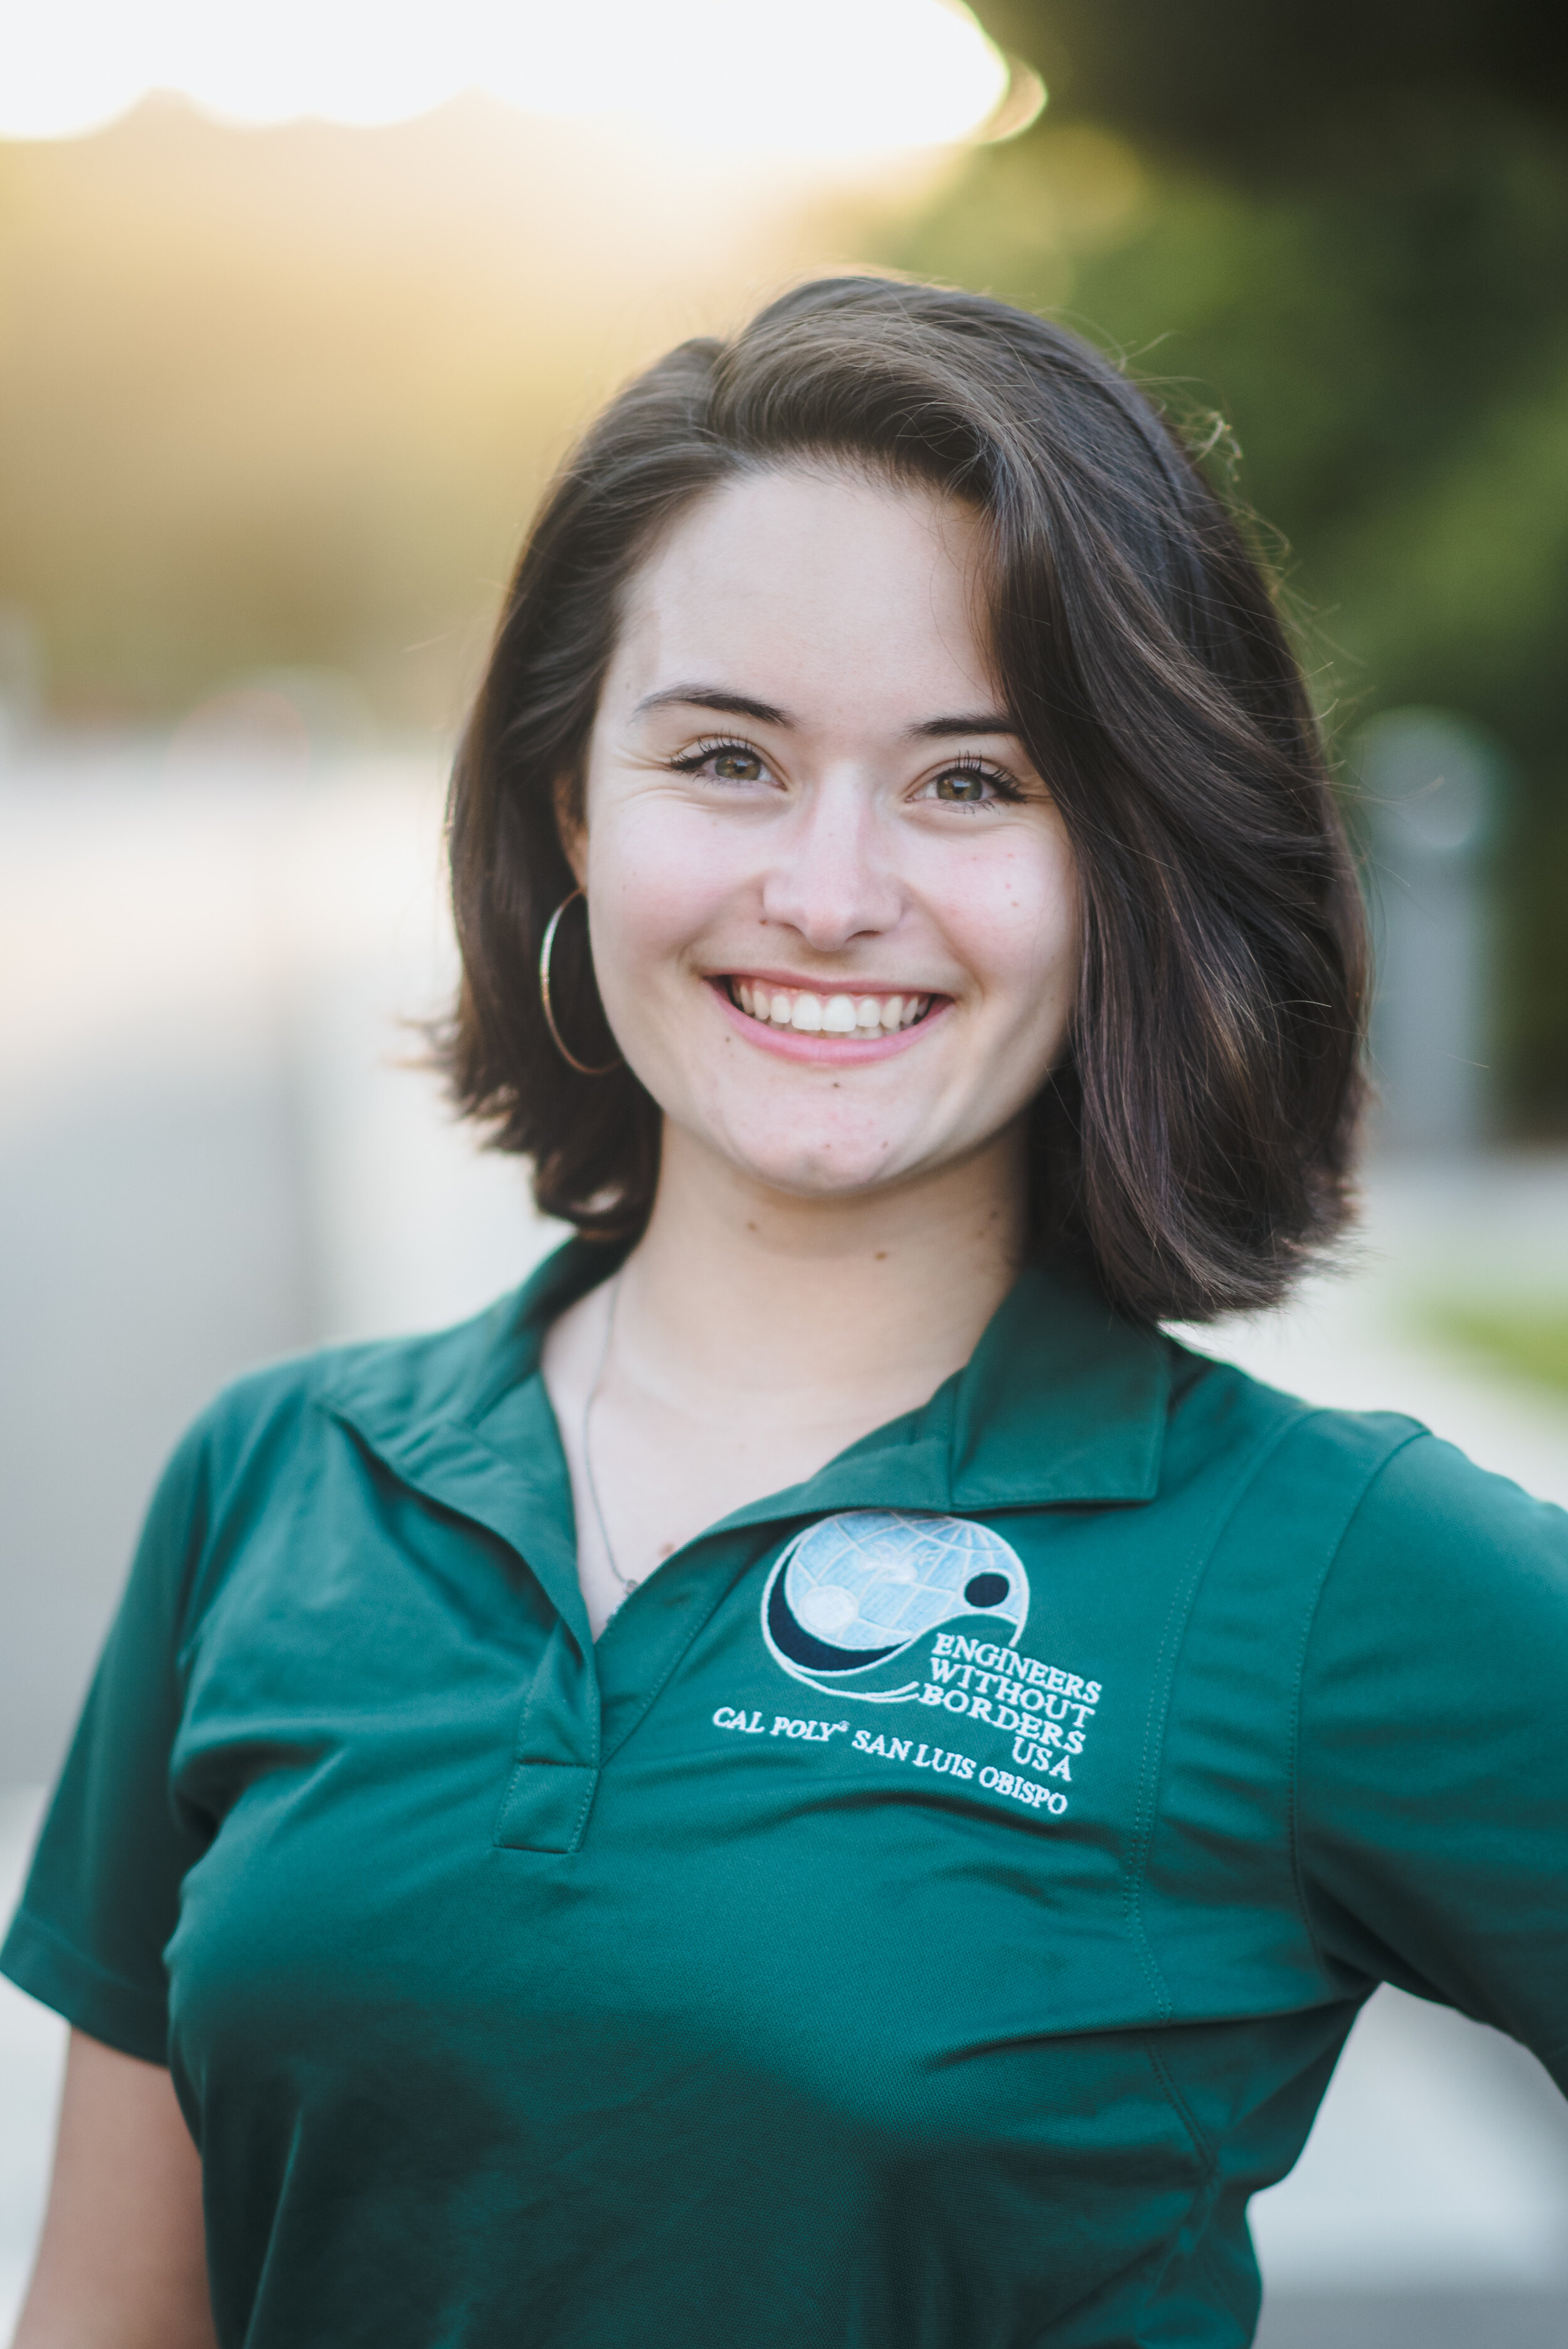 Olivia Weinbaum - Events Coordinator    Grad 2021 - Civil Engineering   Olivia is from Las Cruces, New Mexico and she joined EWB because she wants to help those in underdeveloped countries with their infrastructure issues. Her favorite memory of EWB is spending time with her best friends working on the project team and going on EWB's quarterly camping trips. She loves dancing and is a part of Urban Movement. She also loves working out, camping, and riding motorcycles.